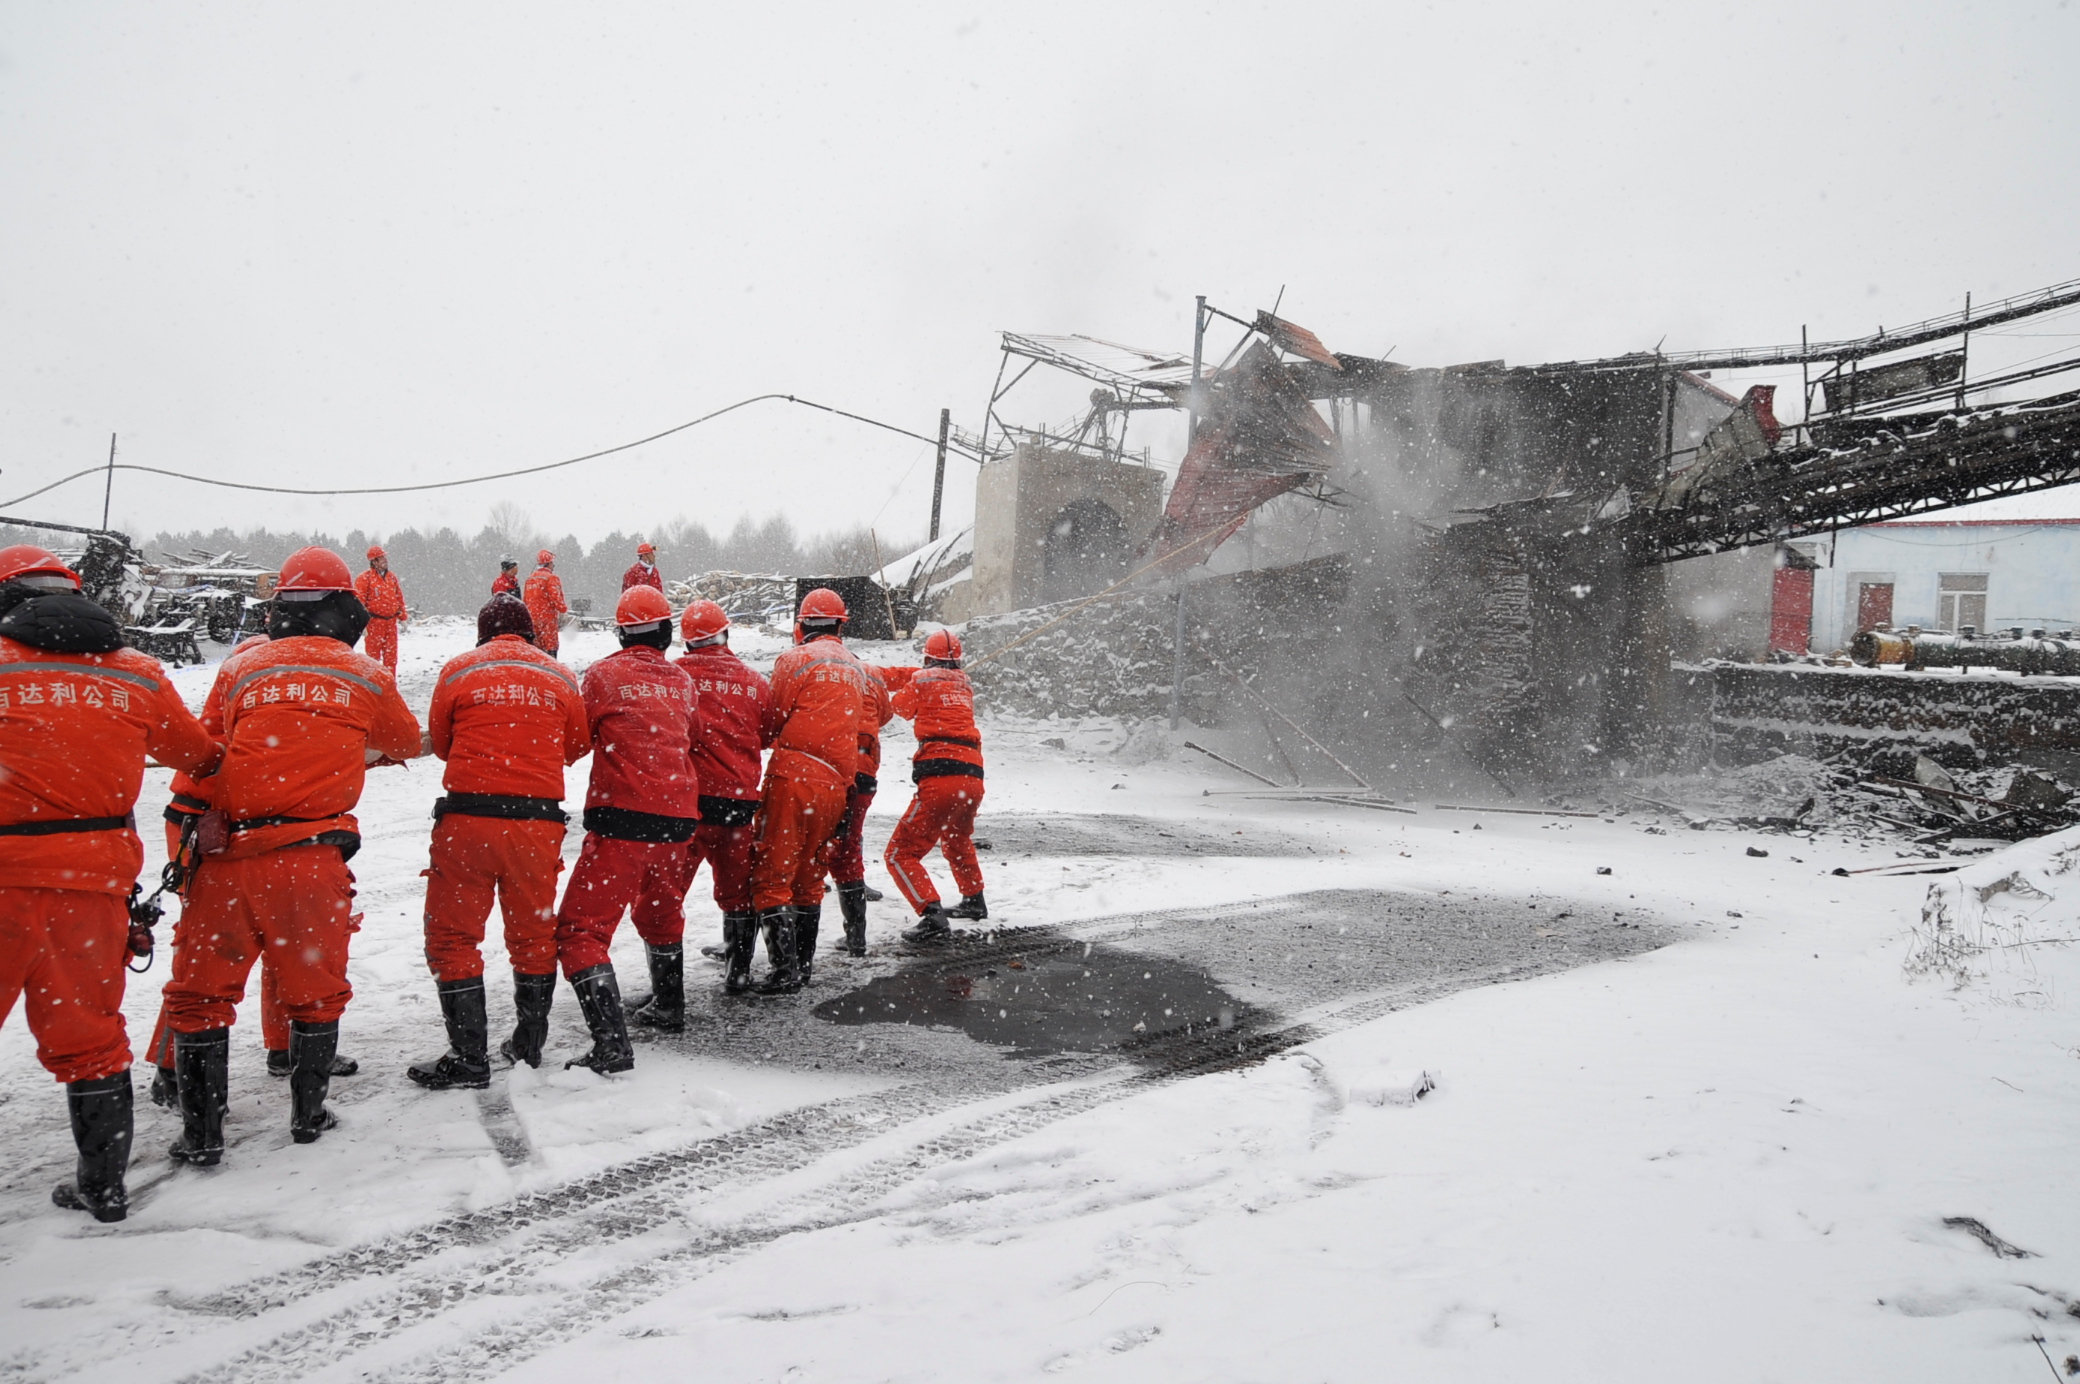 Chinese mine disasters kill at least 38